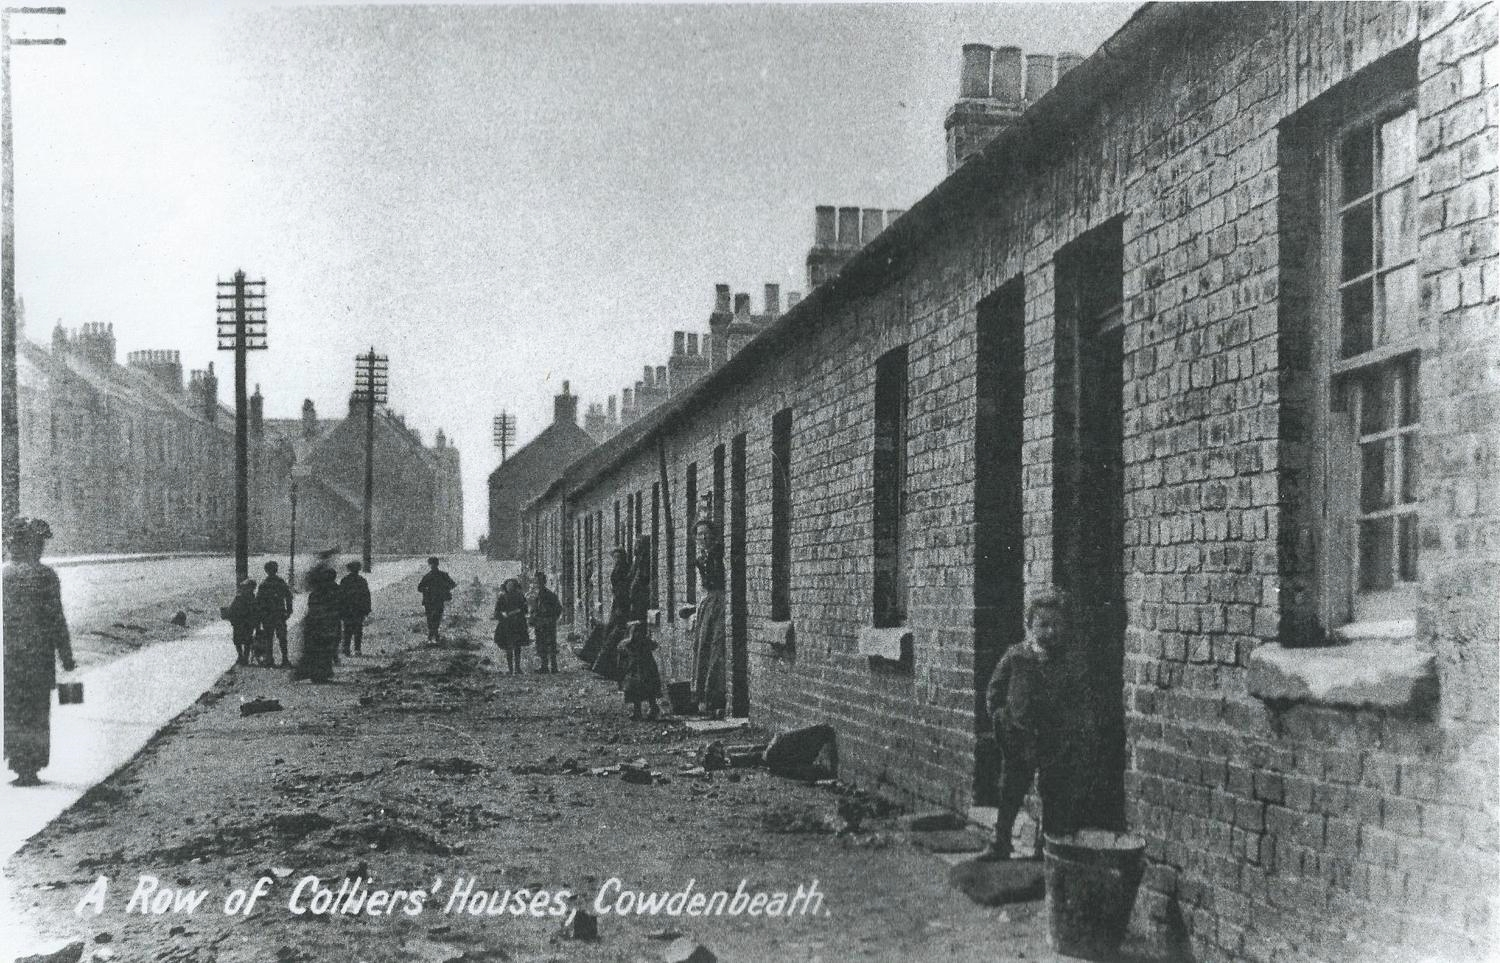 A typical Miners' Row, Cowdenbeath near Hill of Beath, Fife